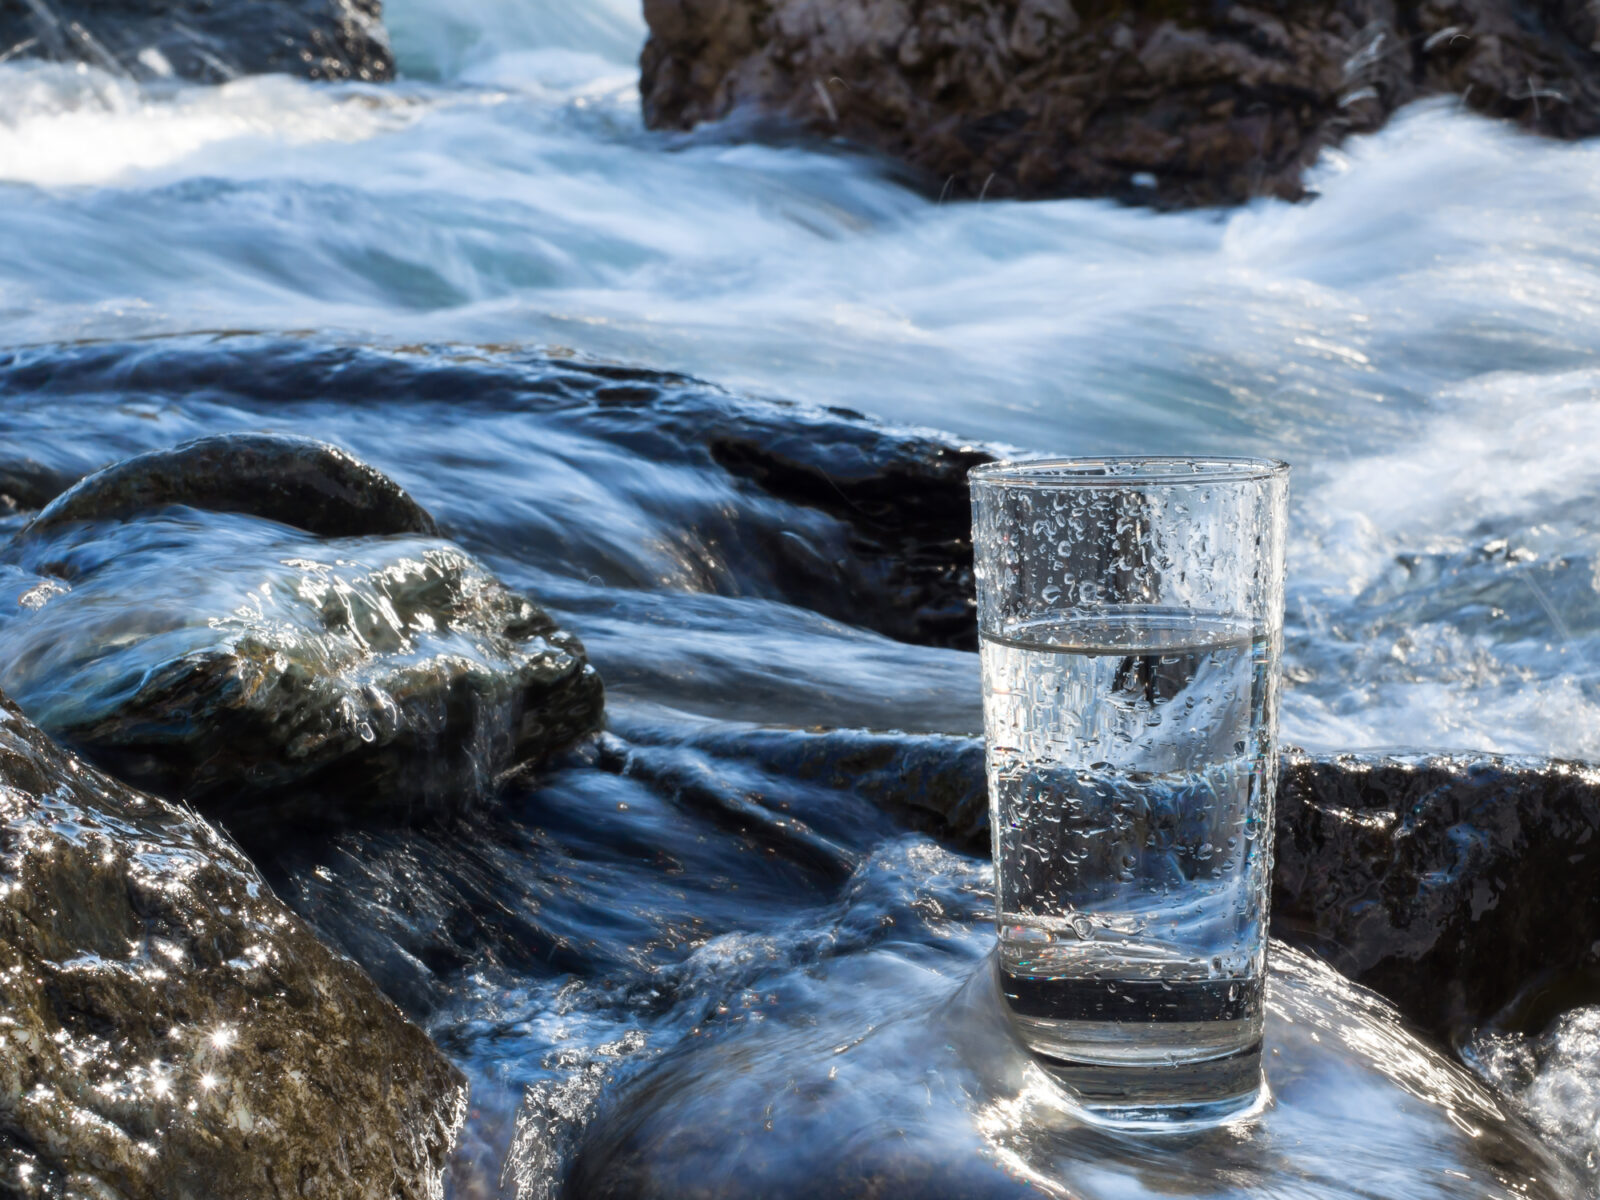 A picture of a drinking glass in a stream for a post on Source Water Protection Week.